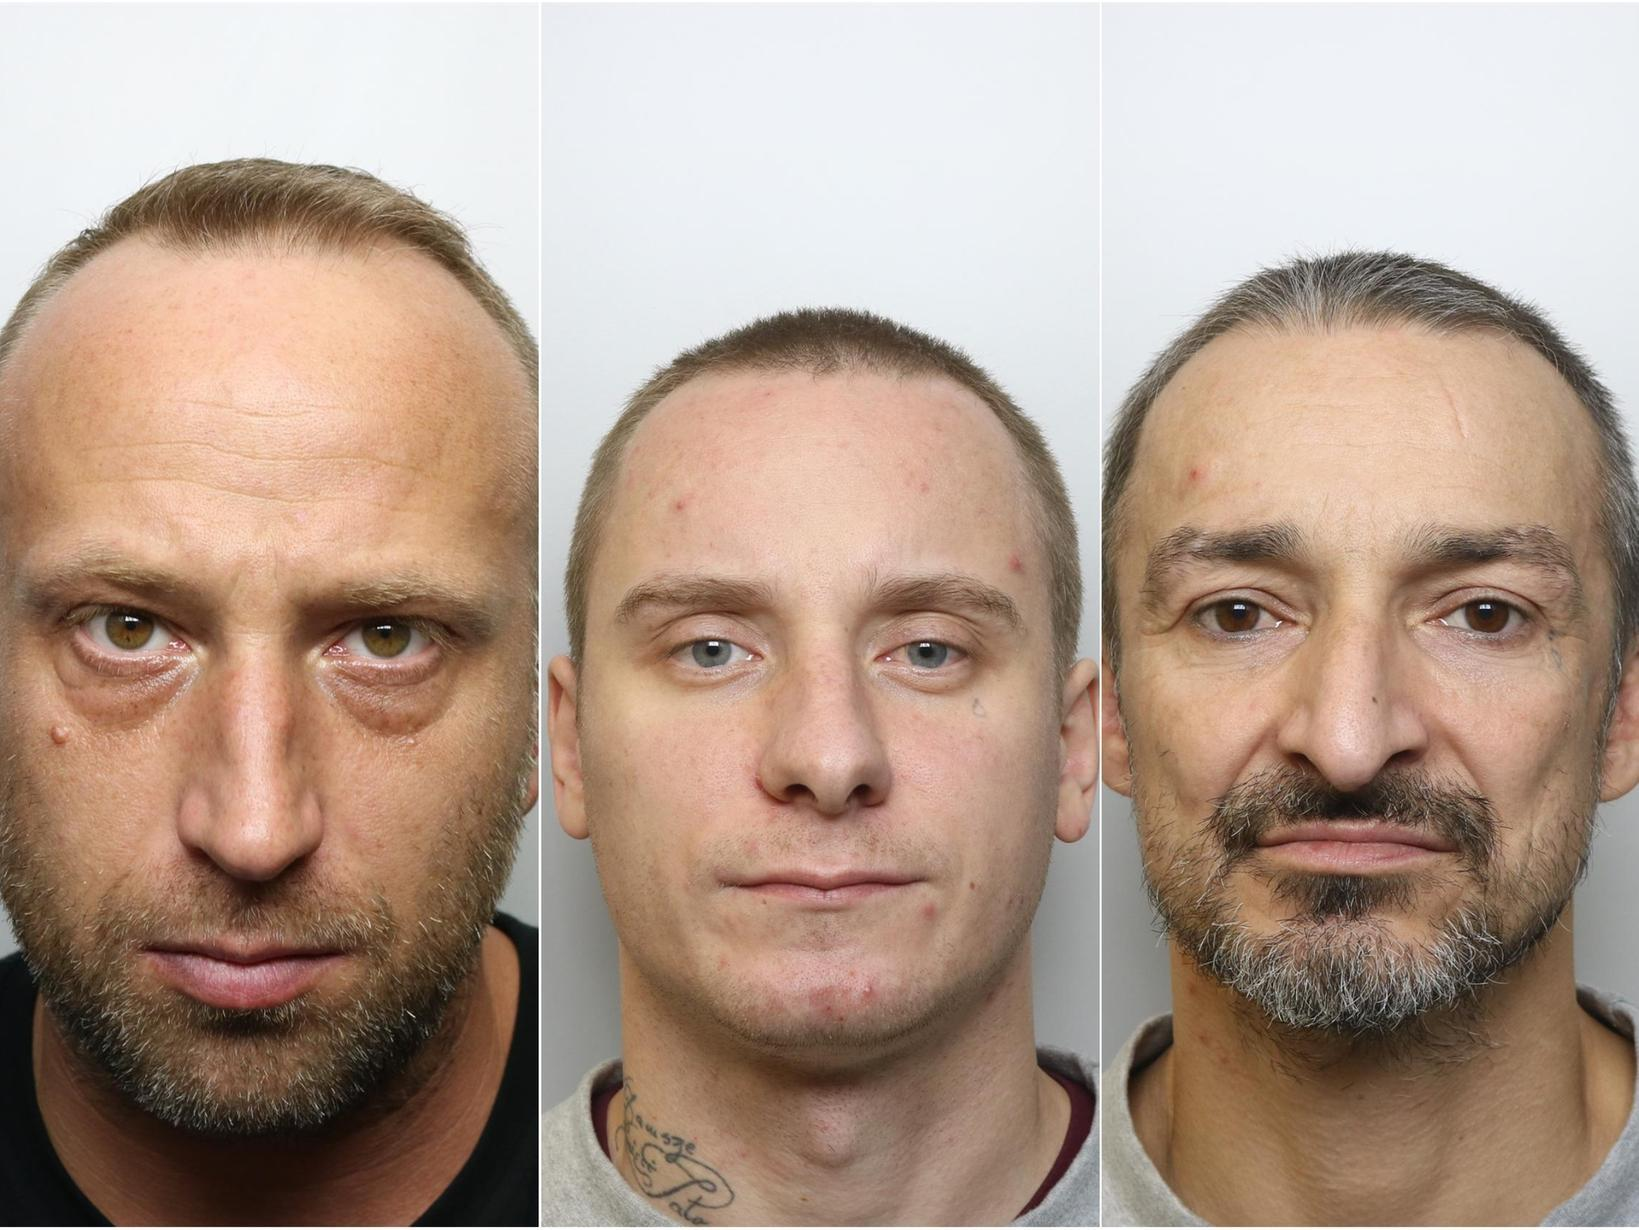 Three men jailed for more than 40 years for firing gun on West Yorkshire street